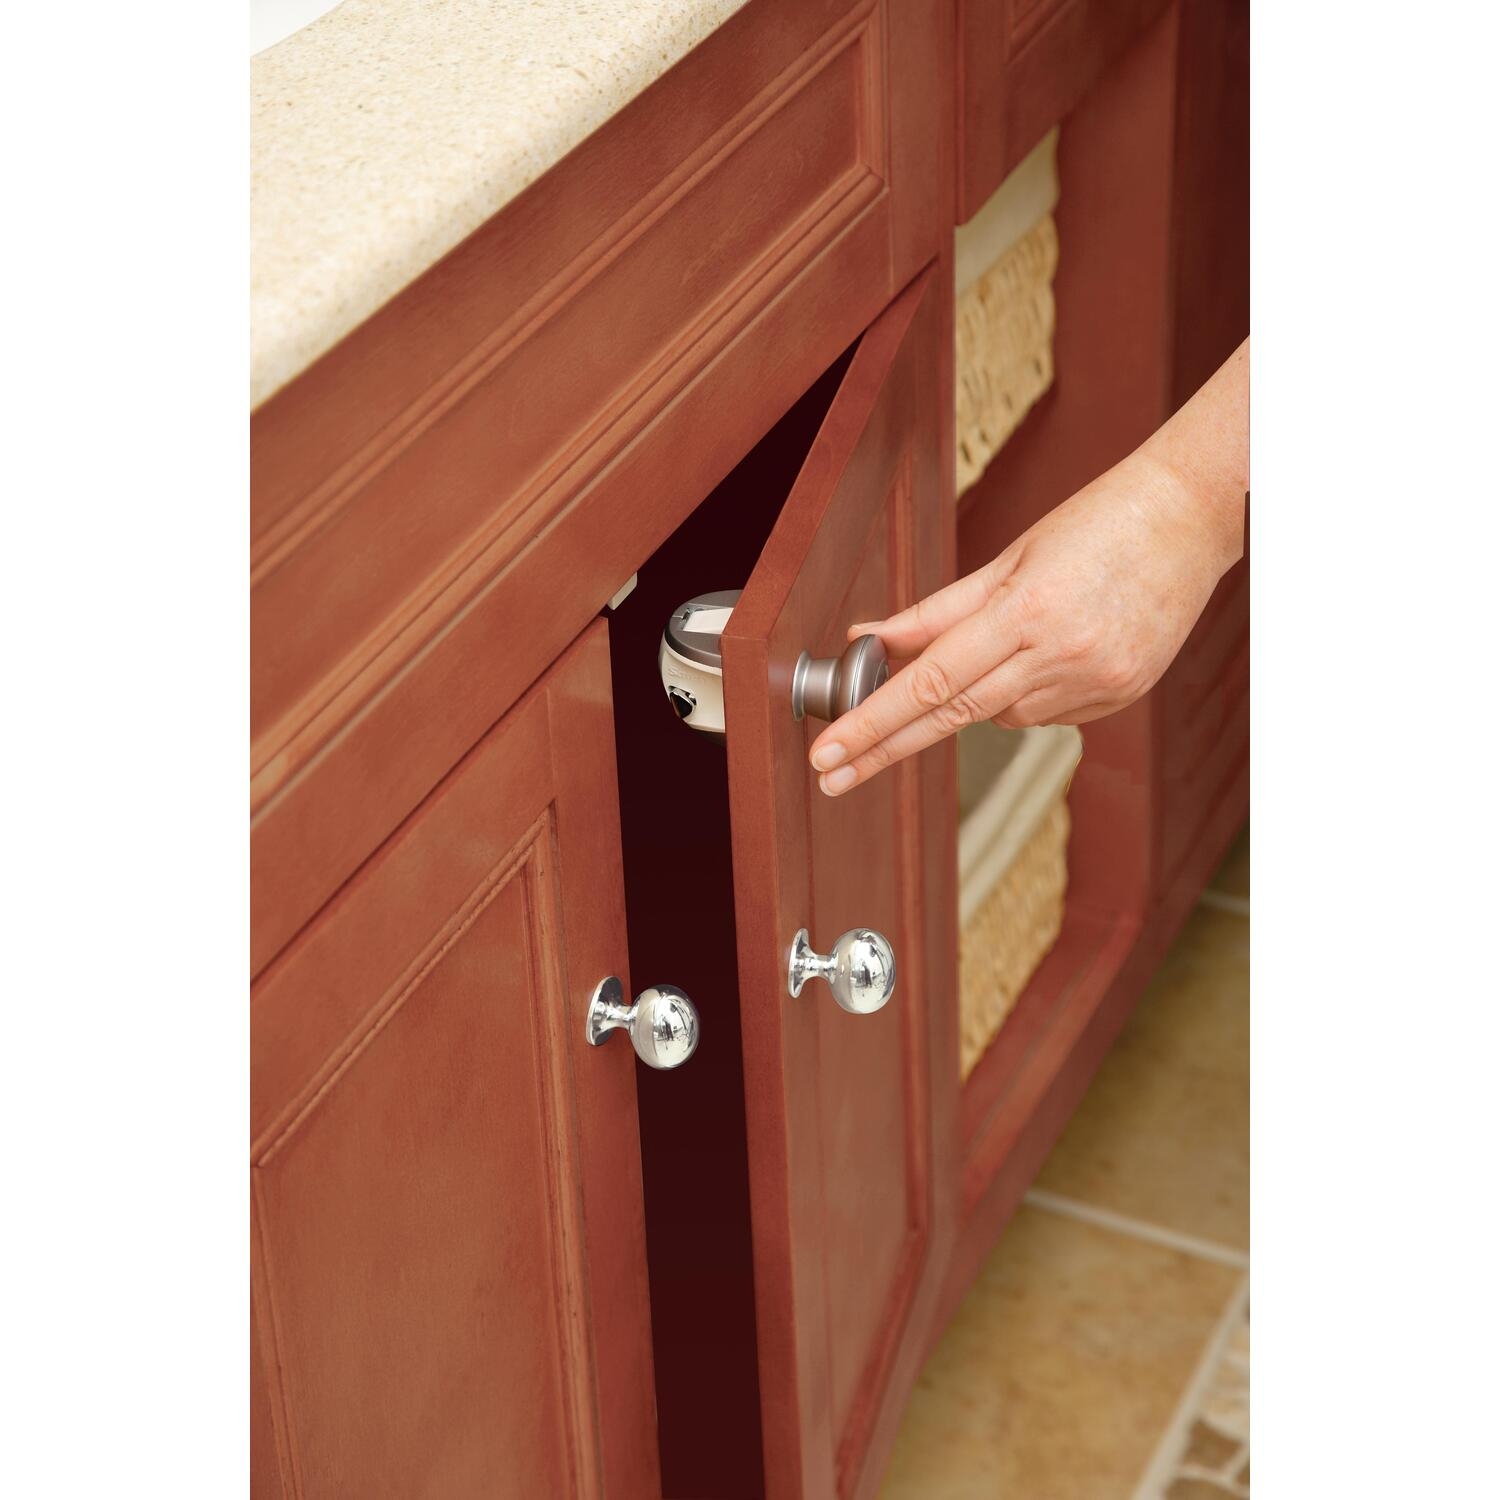 drawers latches and rationell drawer best safety of cheap model boats locks for magnetic baby